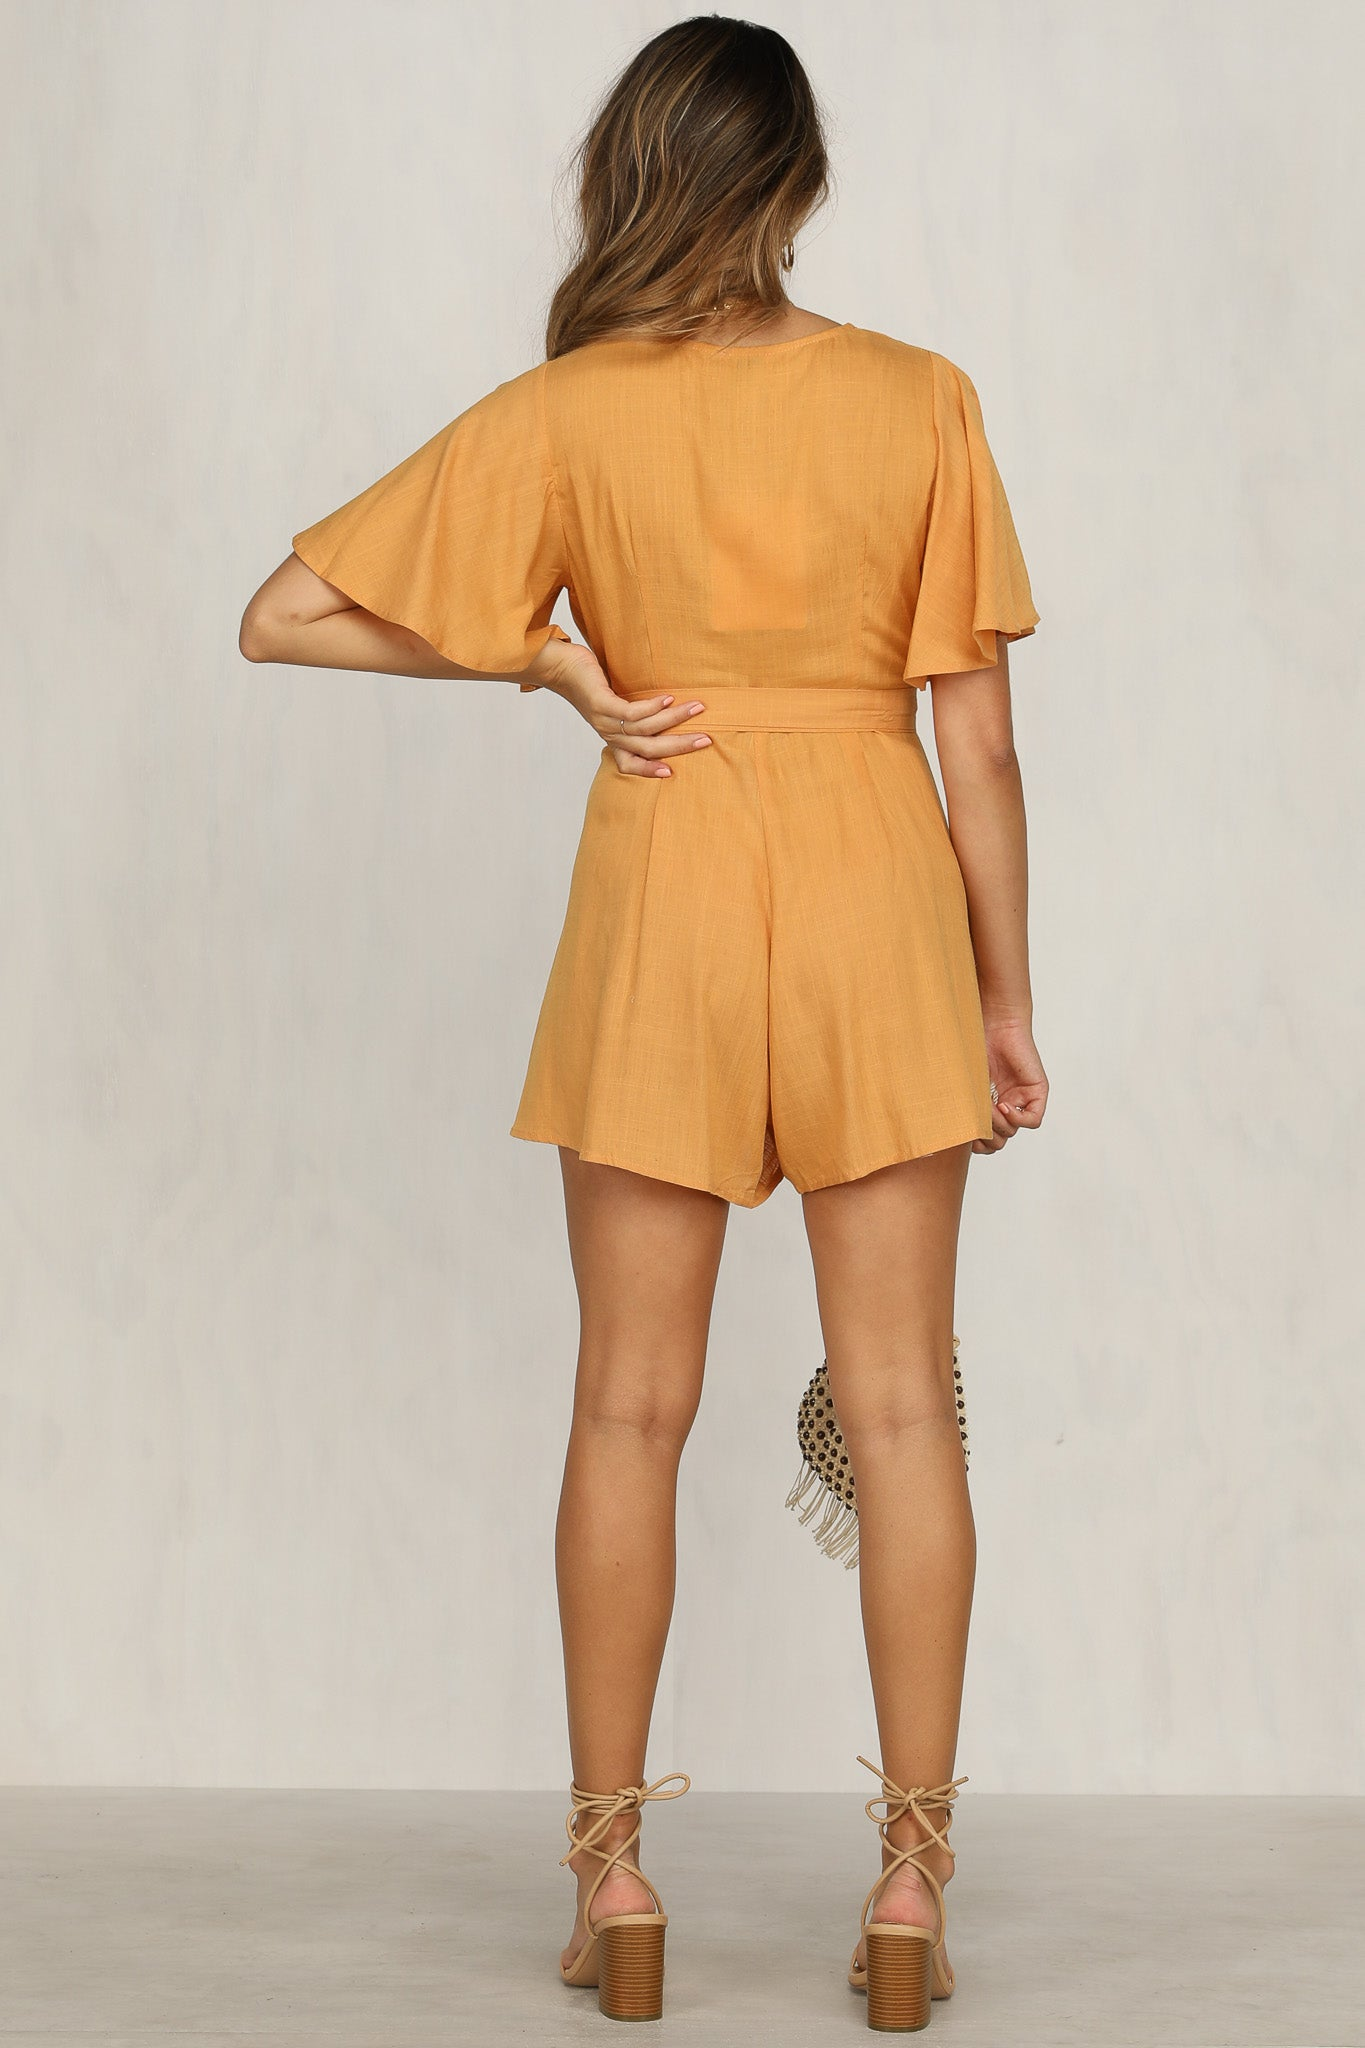 Pure Sunlight Playsuit